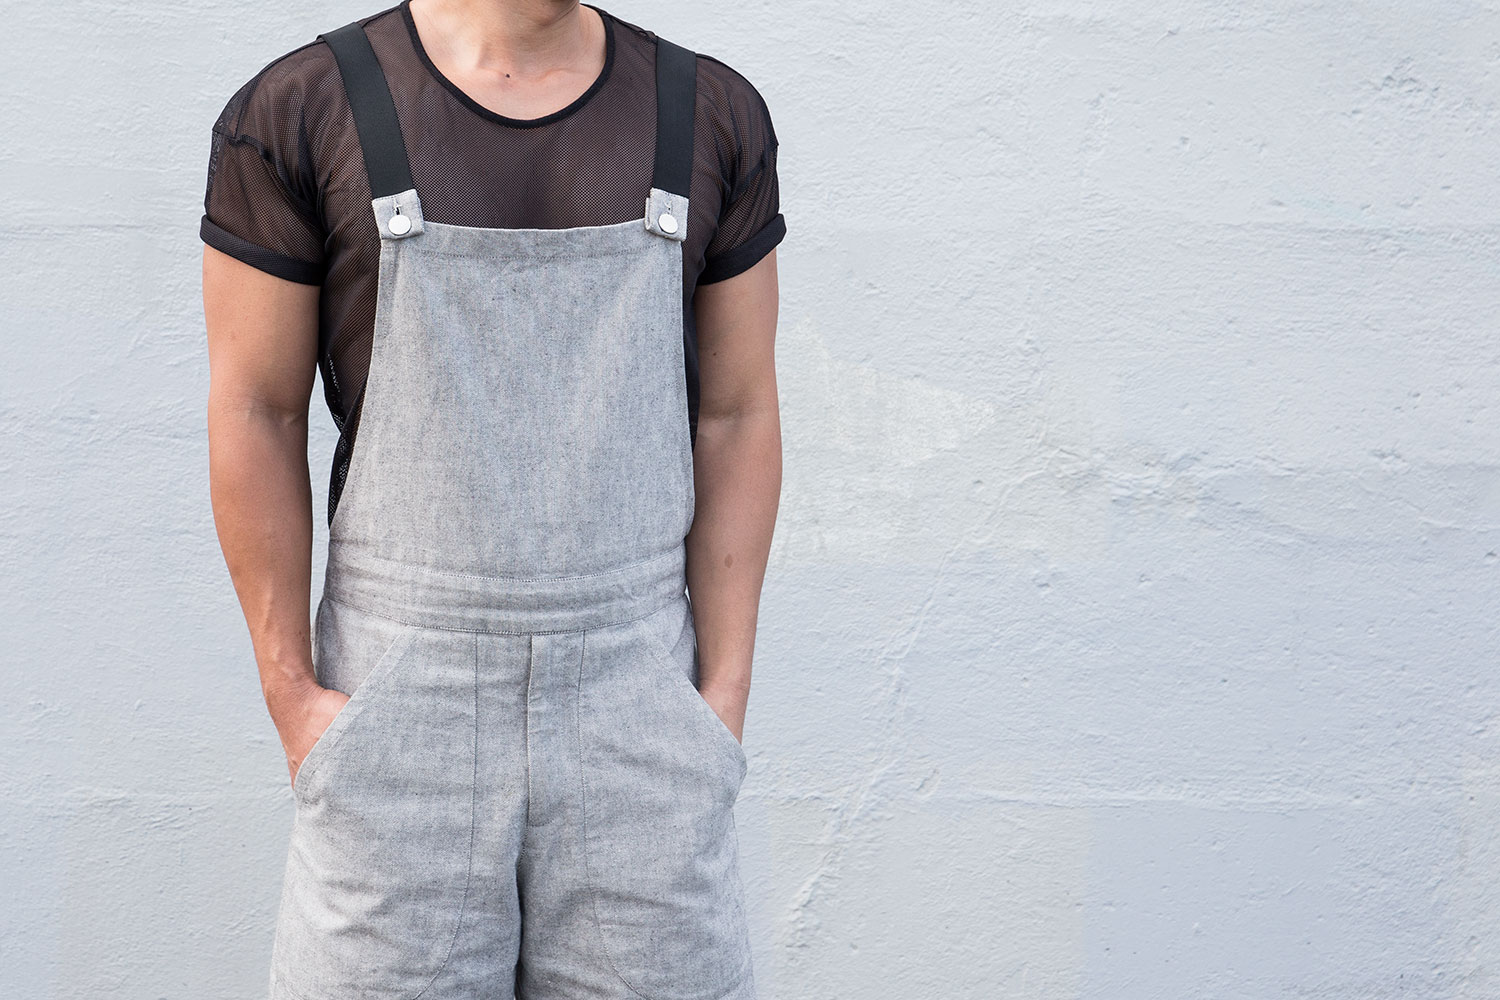 Chin wears ASOS t shirt, Zambesi overalls, Nom D socks and Dr. Martens shoes.